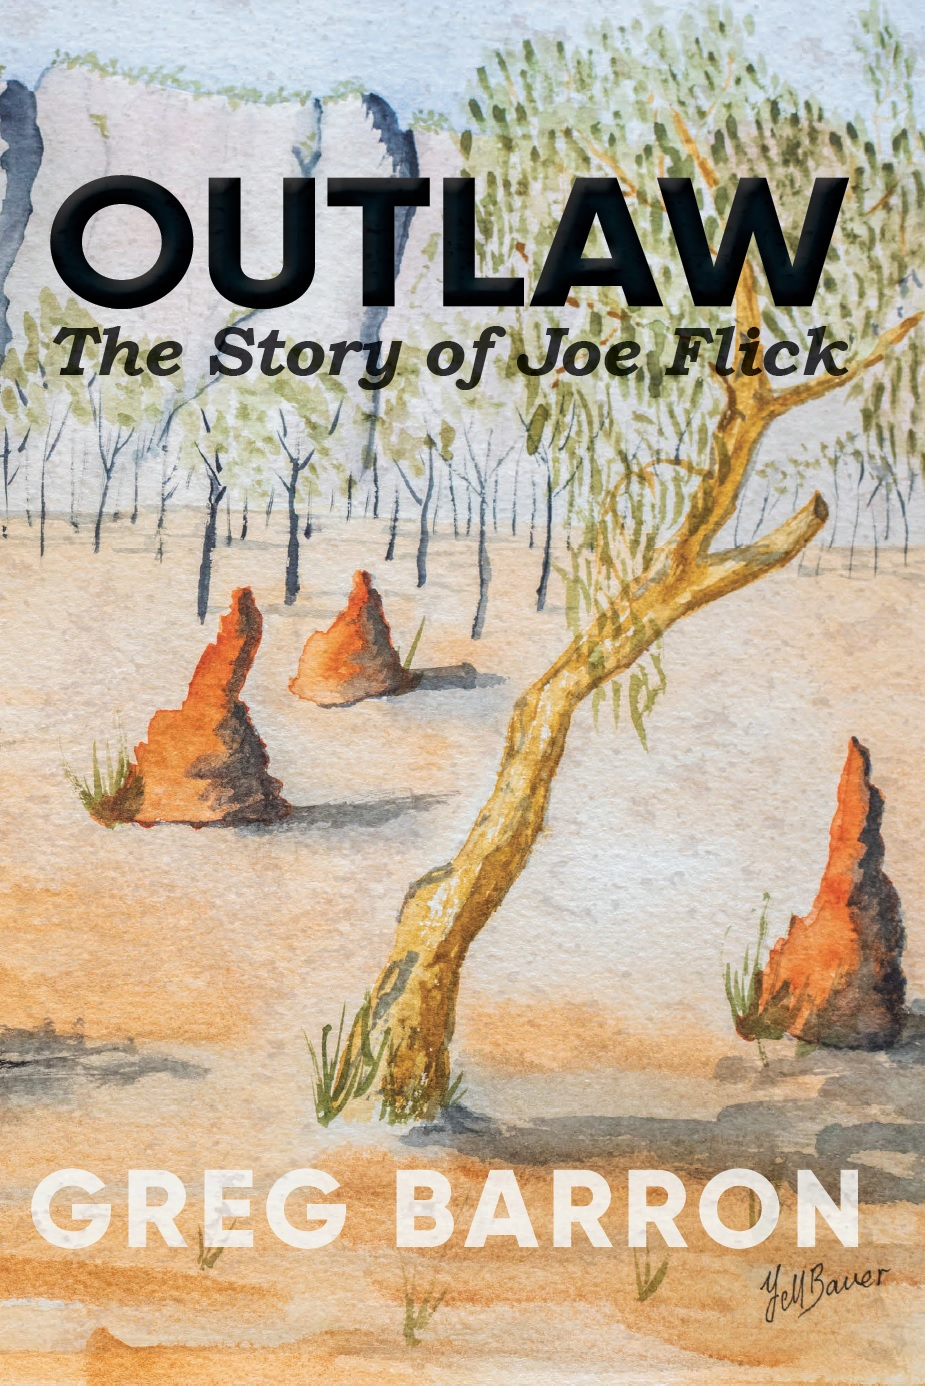 OUTLAW The Story of Joe Flick by Greg Barron